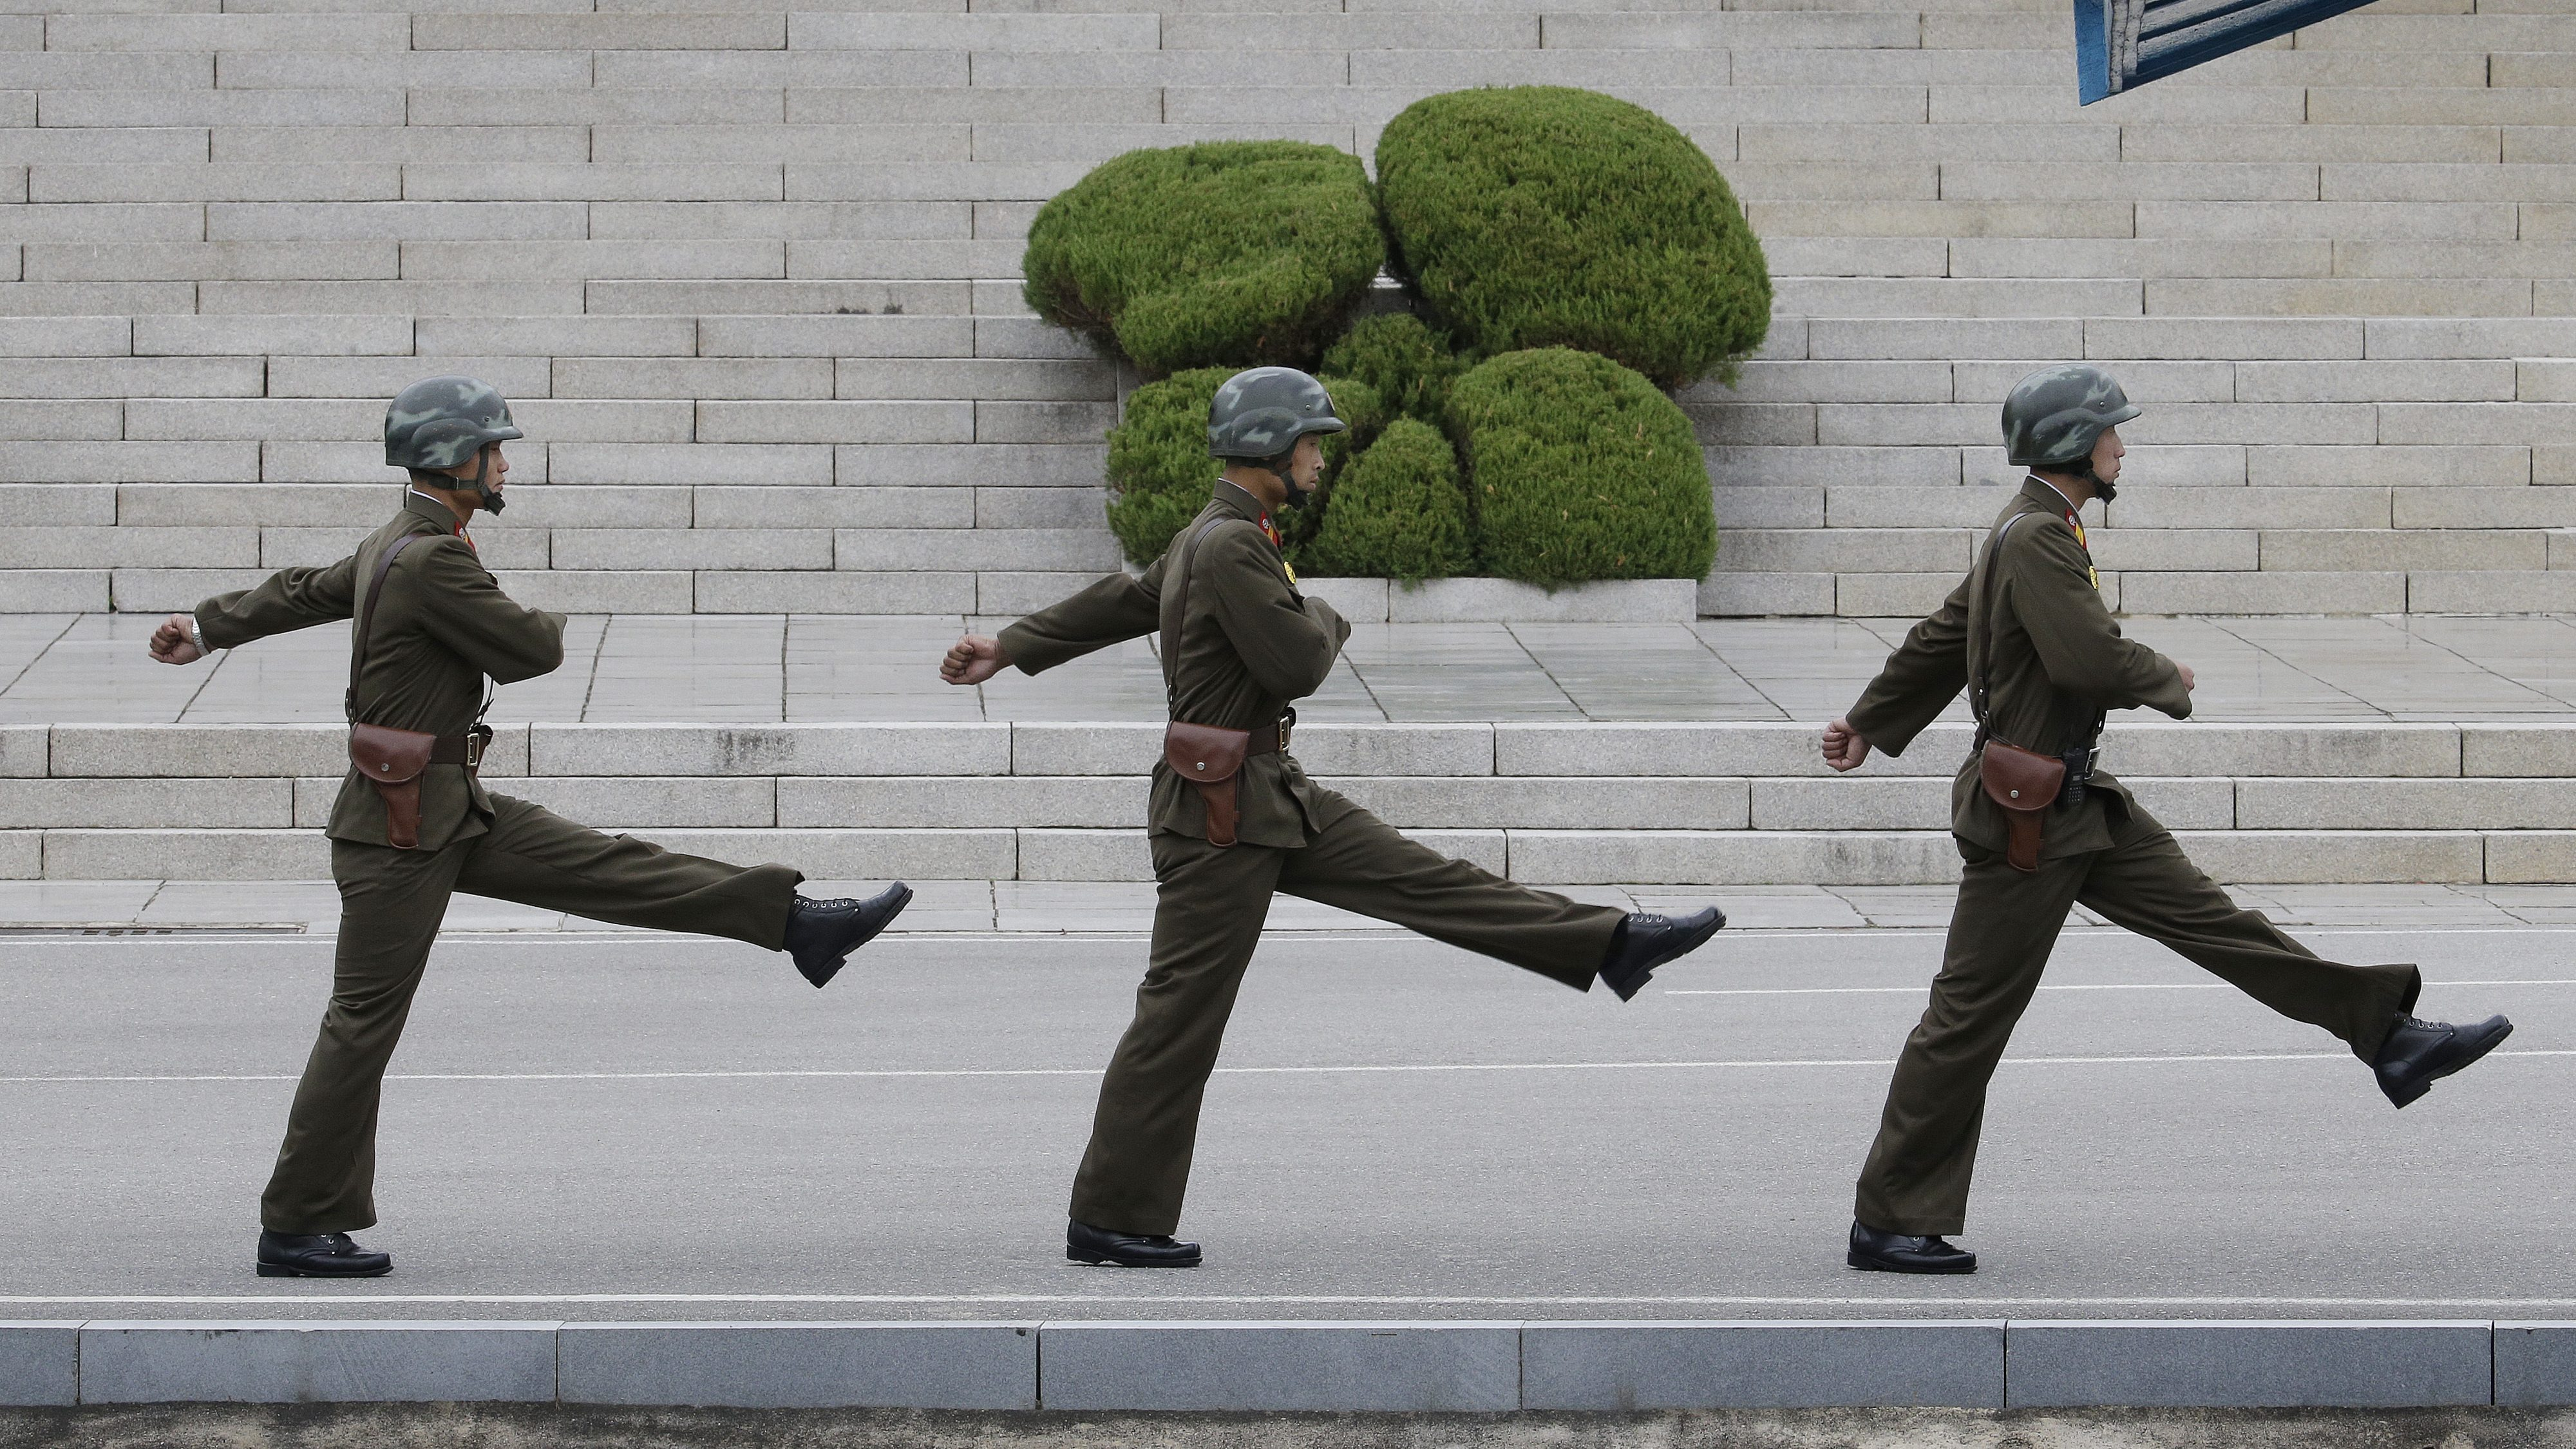 In this Thursday, Oct. 12, 2017, file photo, North Korean soldiers march during a visit by Australian Defense Minister Marise Payne and Foreign Minister Julie Bishop to the border village of Panmunjom in Paju, South Korea. (AP Photo/Ahn Young-joon, File)